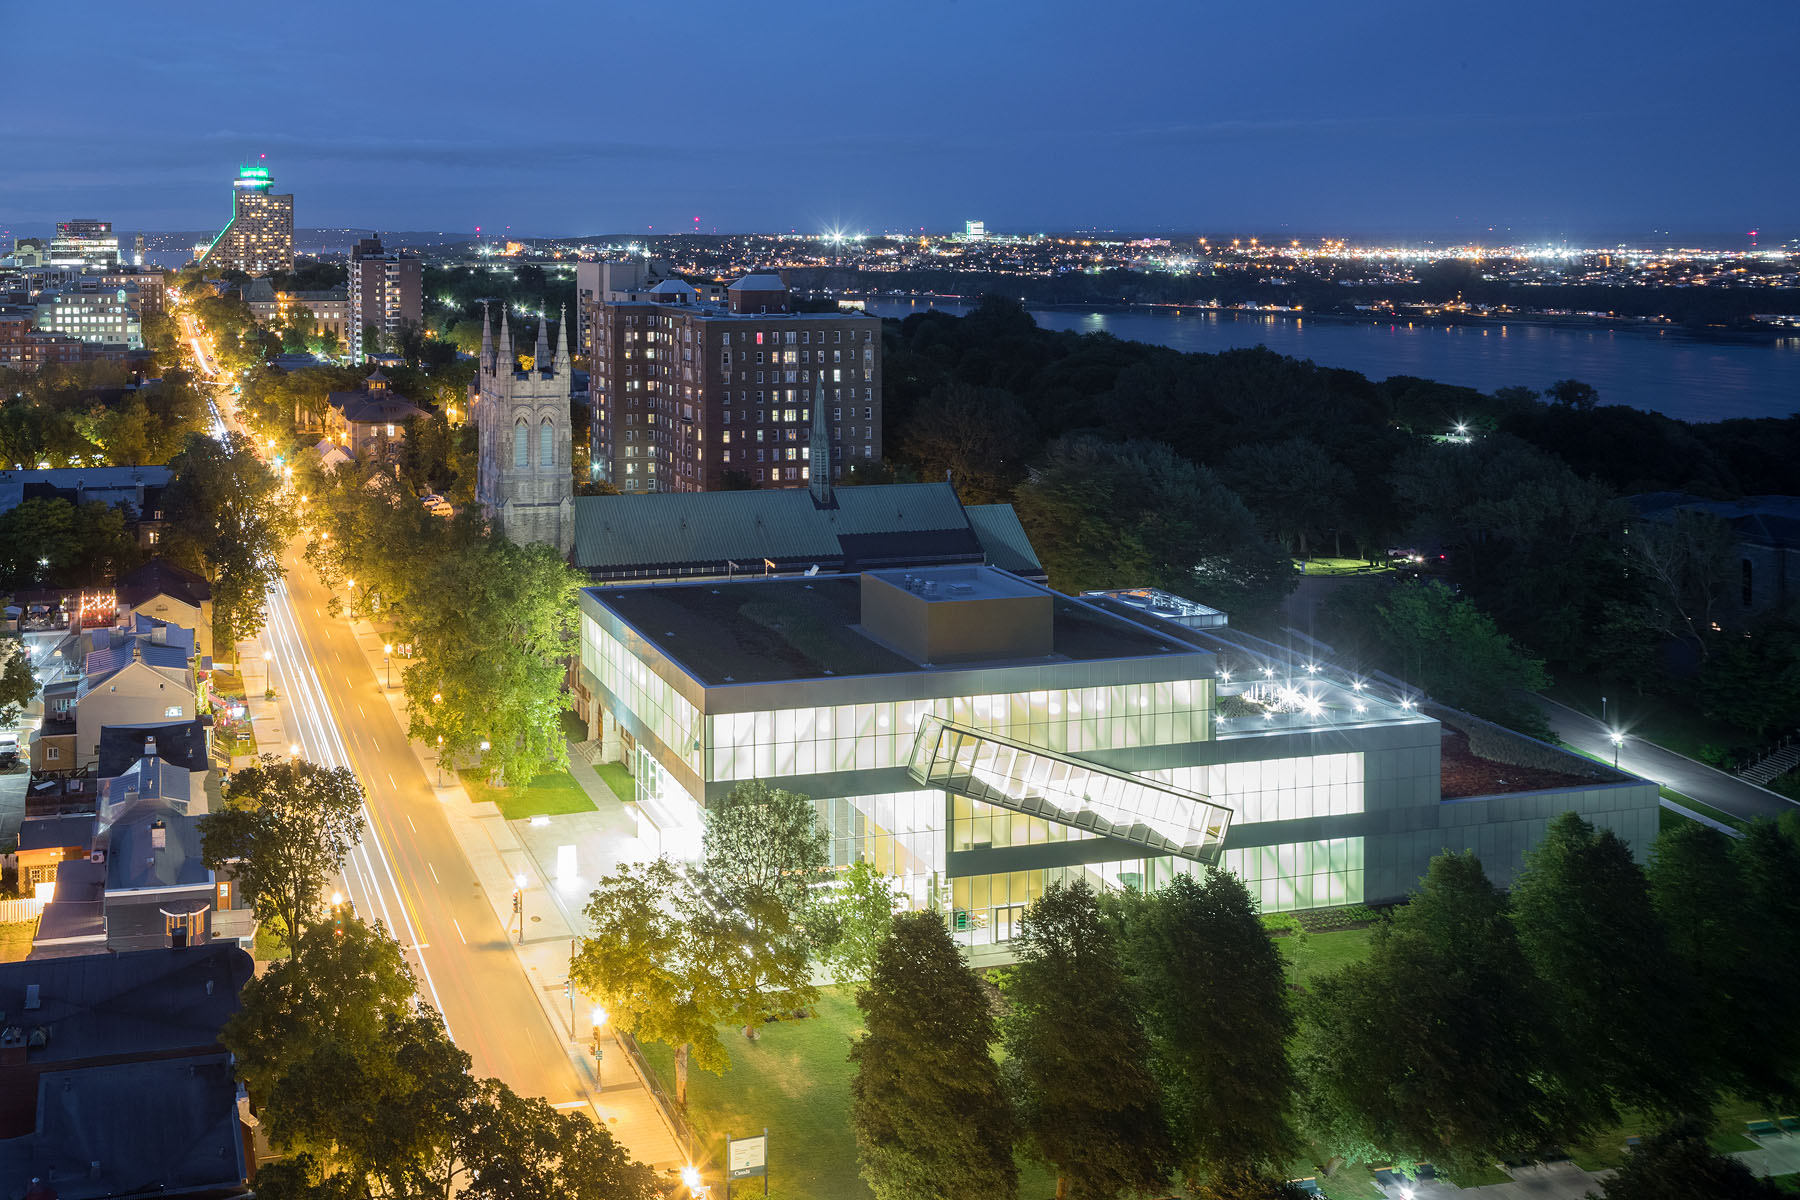 QUEBEC MUSEUM  - Quebec City, Completed June 2015 OMA, Ceren Bingol (Project Architect)